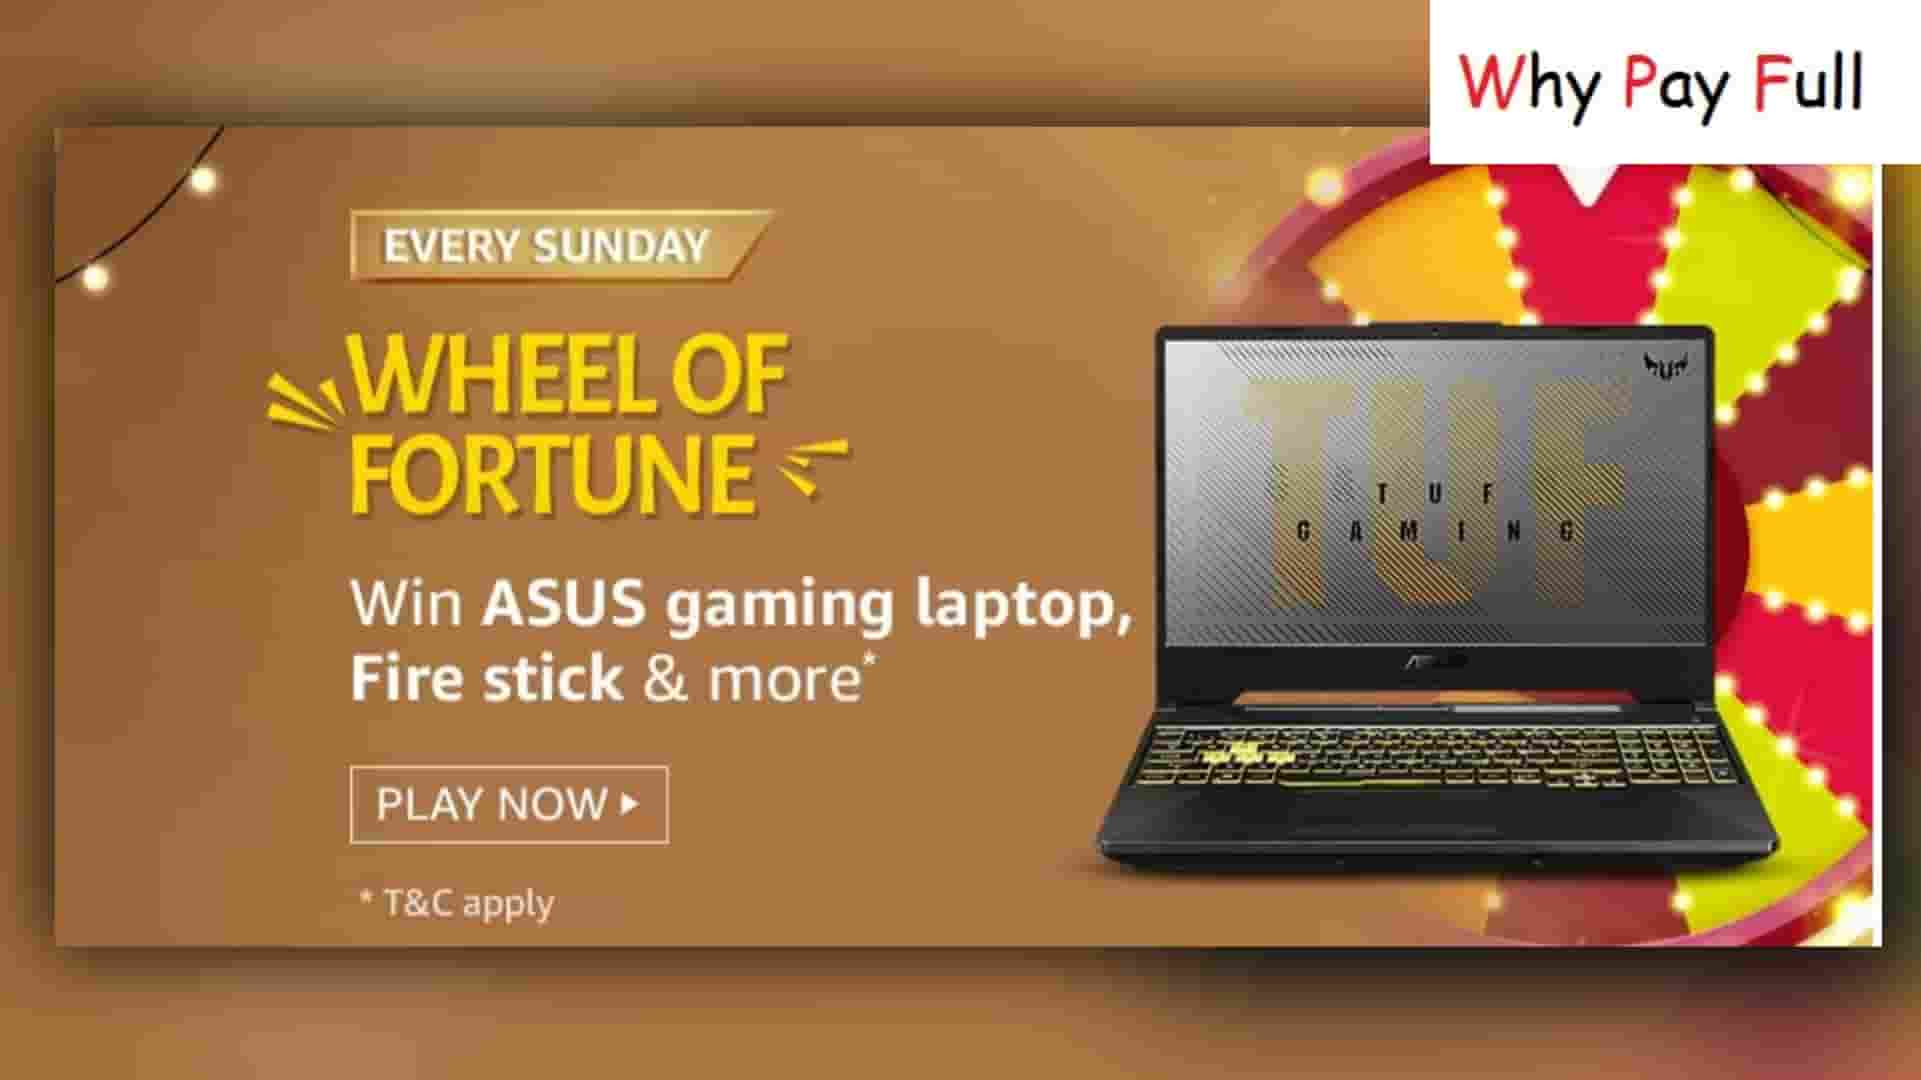 Amazon Wheel Of Fortune Quiz Answers 13 December: Asus Laptop